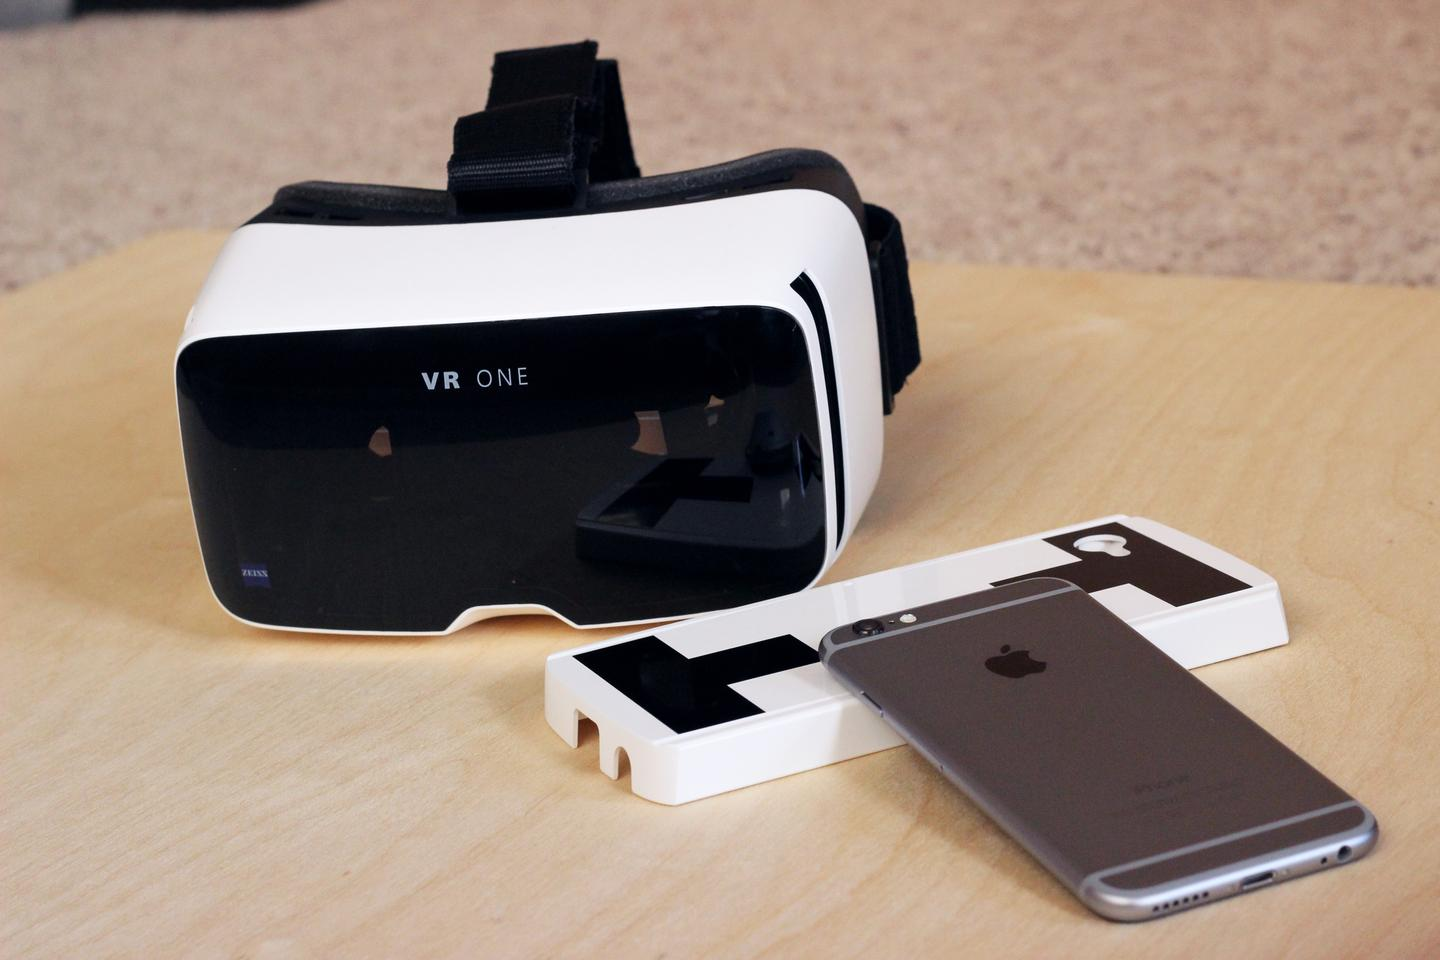 Zeiss VR One, with tray and iPhone 6 (Photo: Will Shanklin/Gizmag.com)